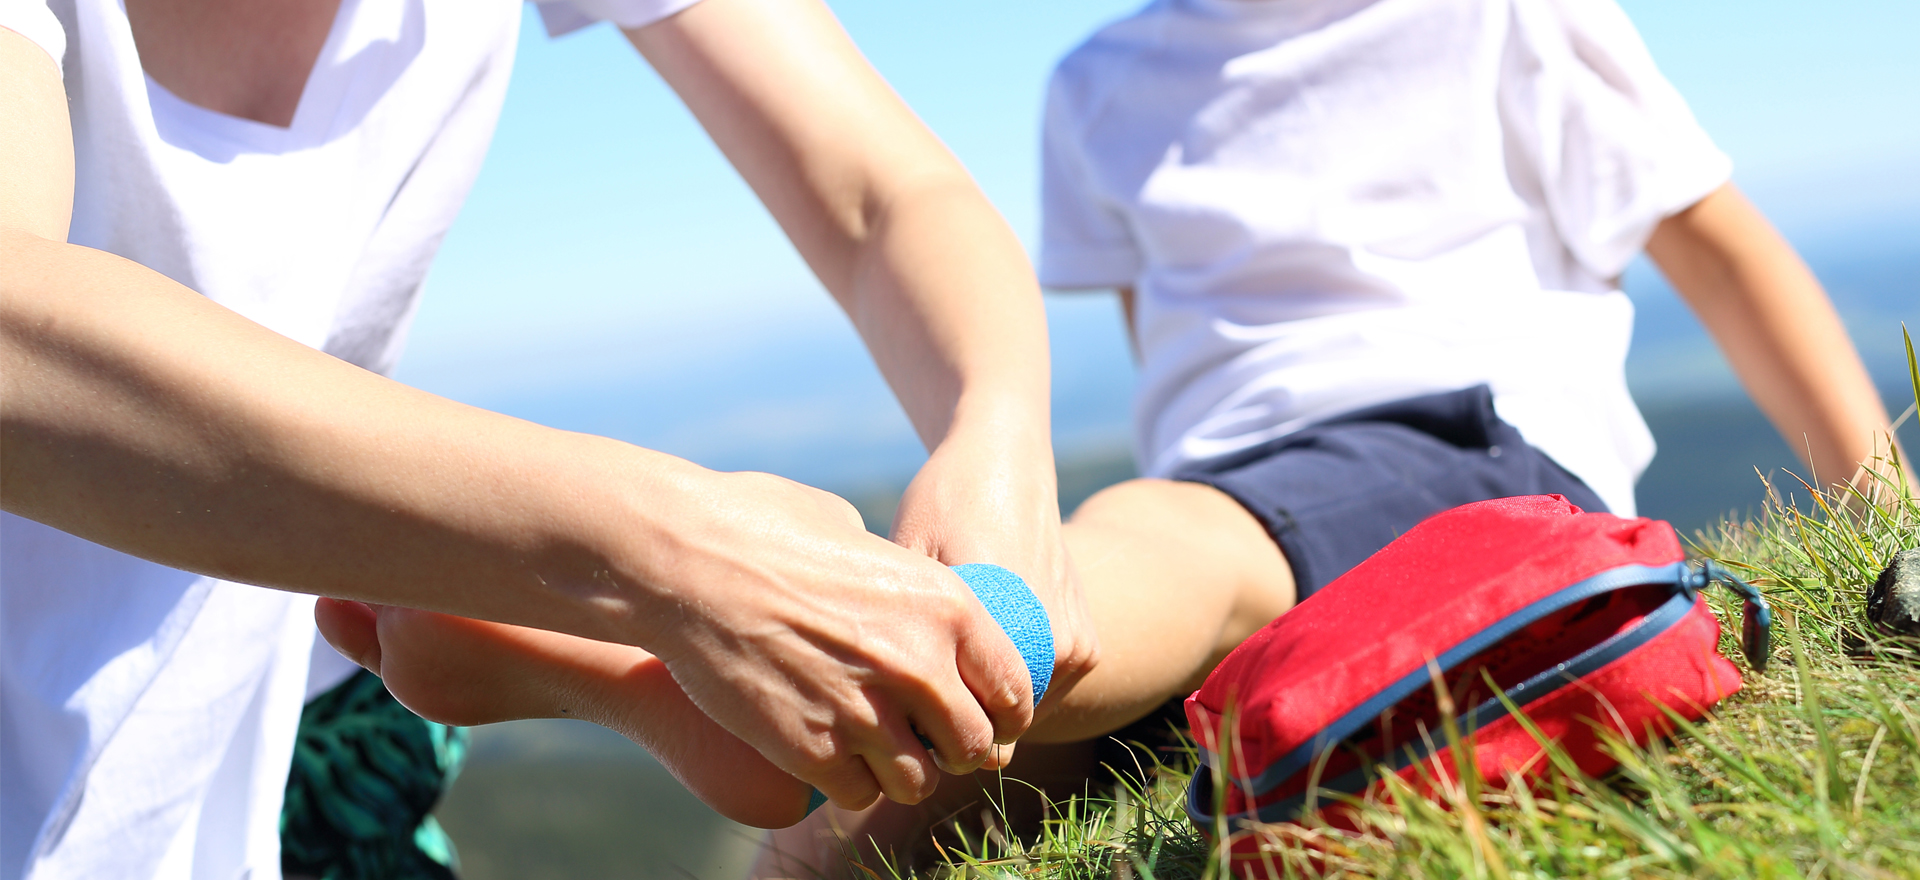 woman helping bandage child's ankle on a mountain | pacific medical supply salem